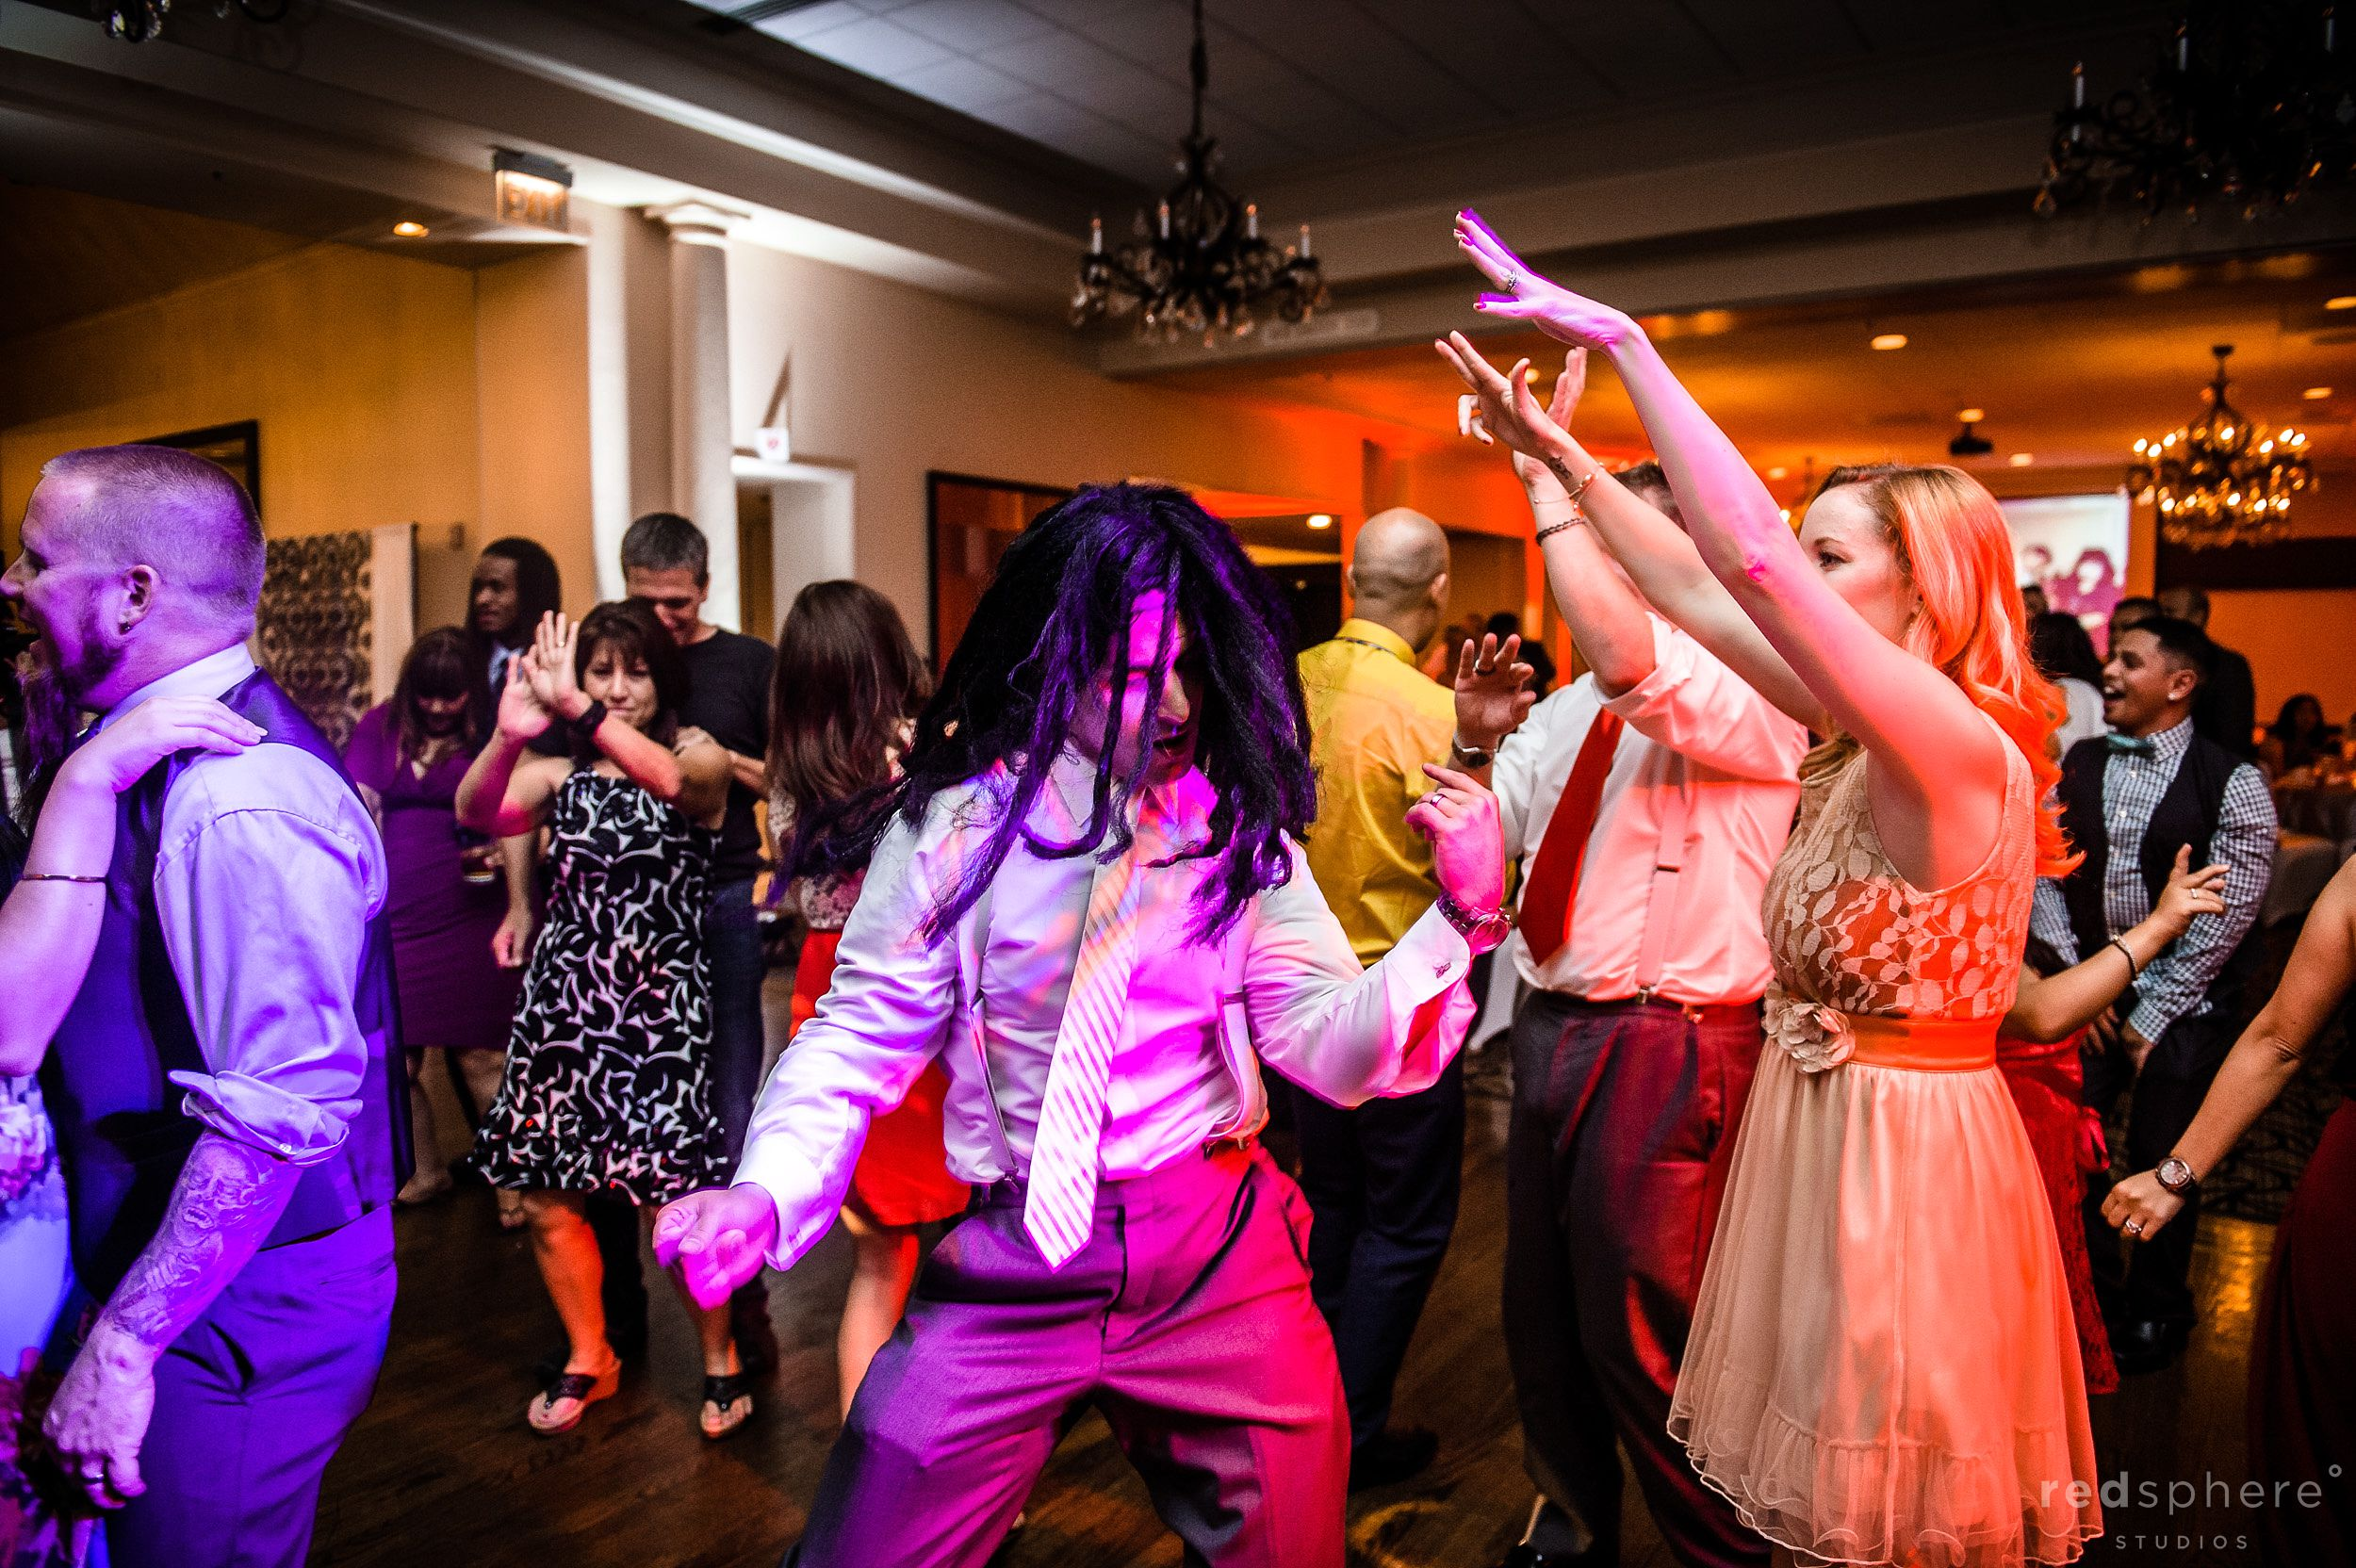 Guests Into The Music and Dancing Their Minds Away